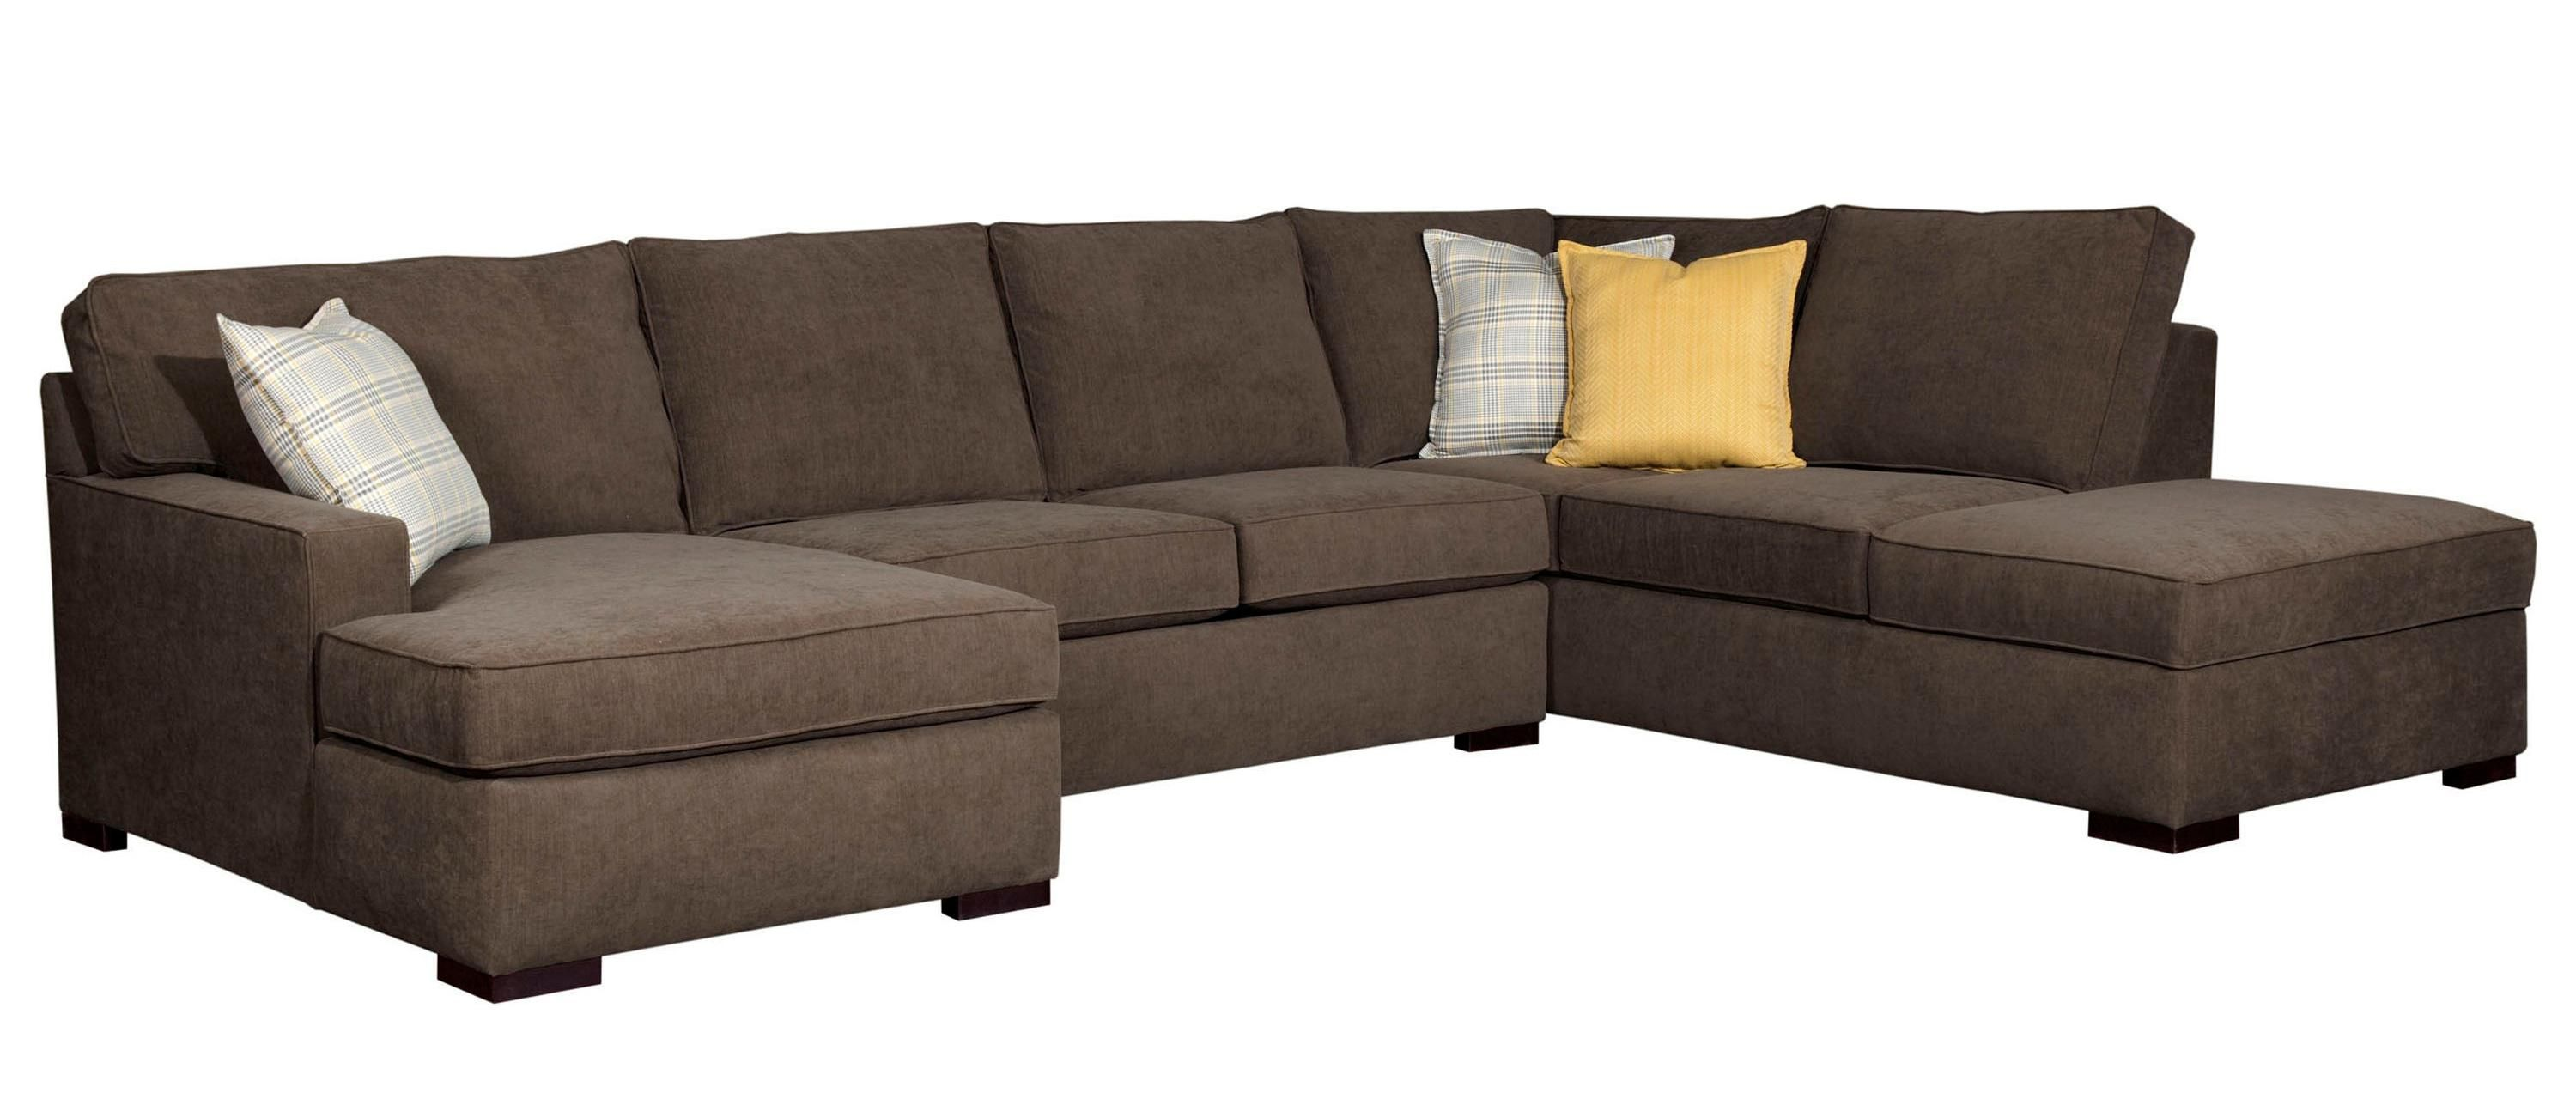 Raphael Three Piece Sectional Sofa by Broyhill Furniture